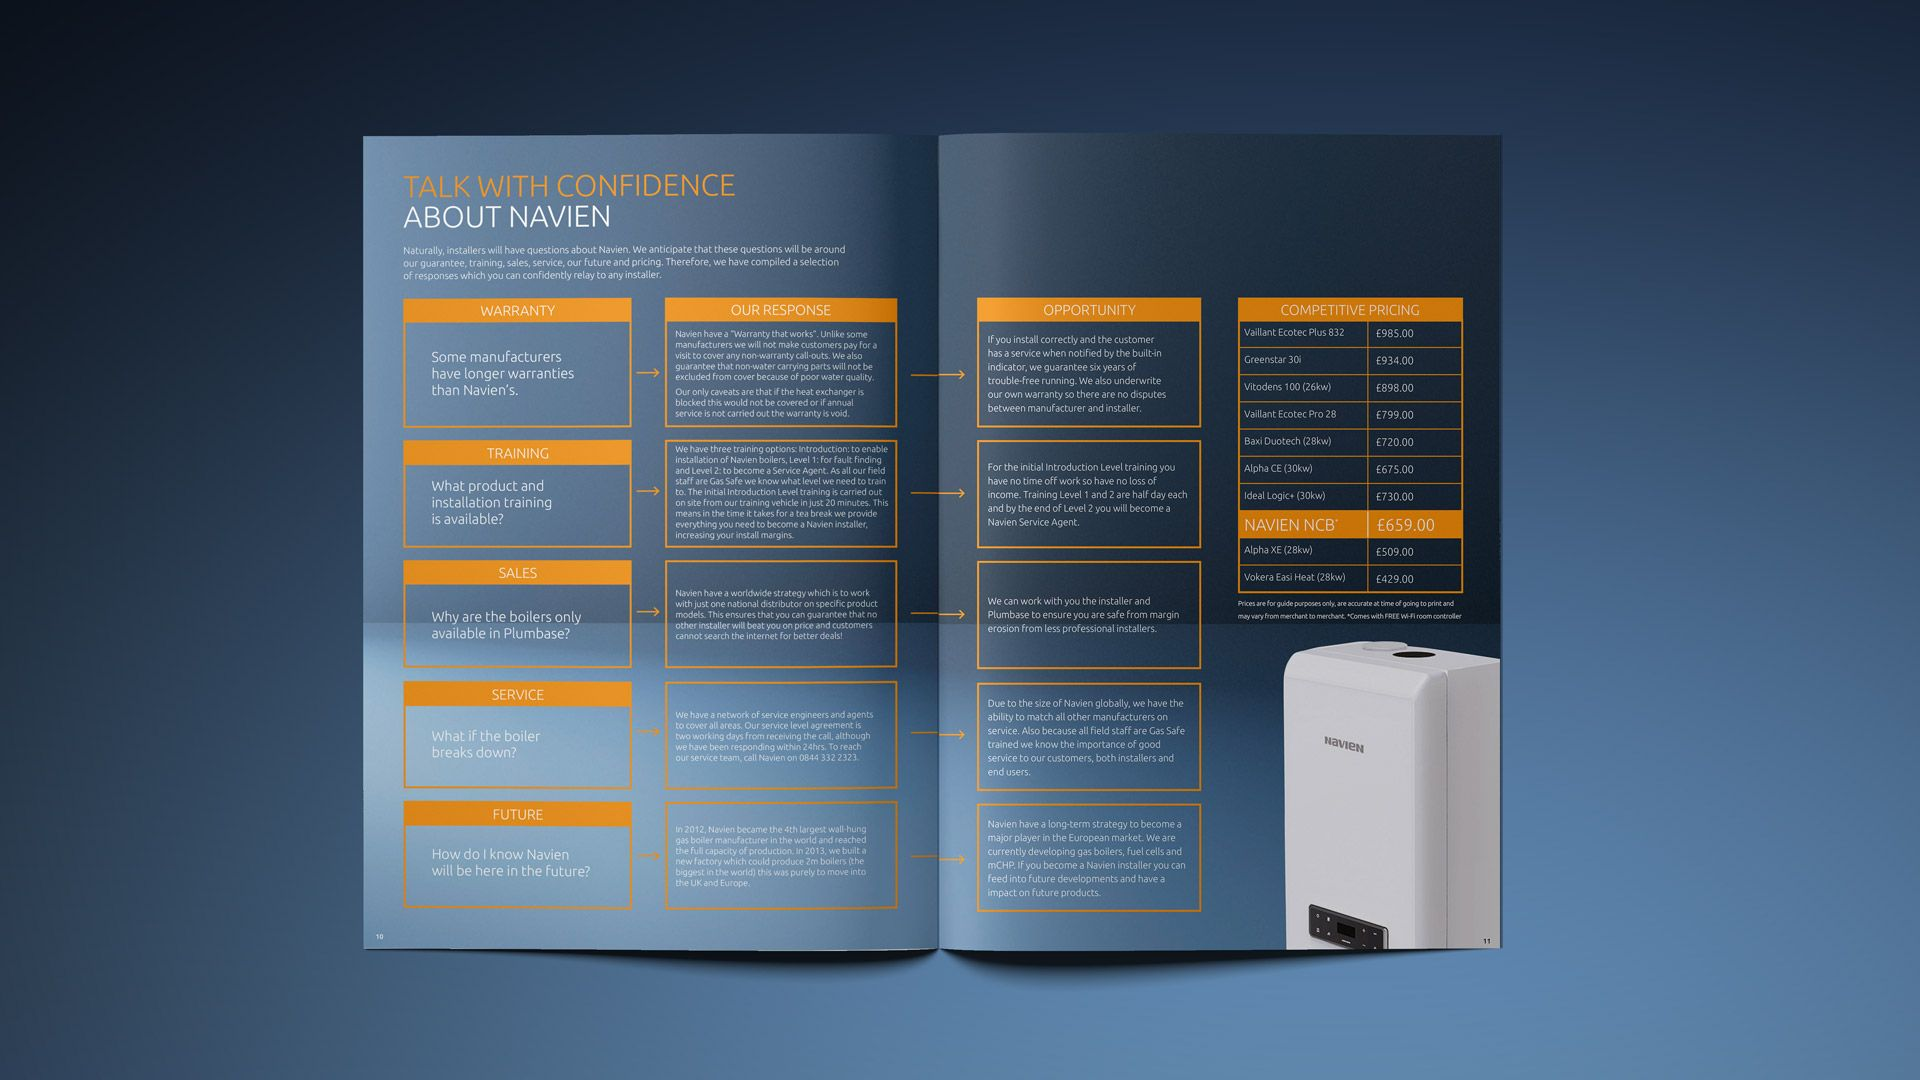 Welcoming new customers into the world of Navien. Navien is the ...